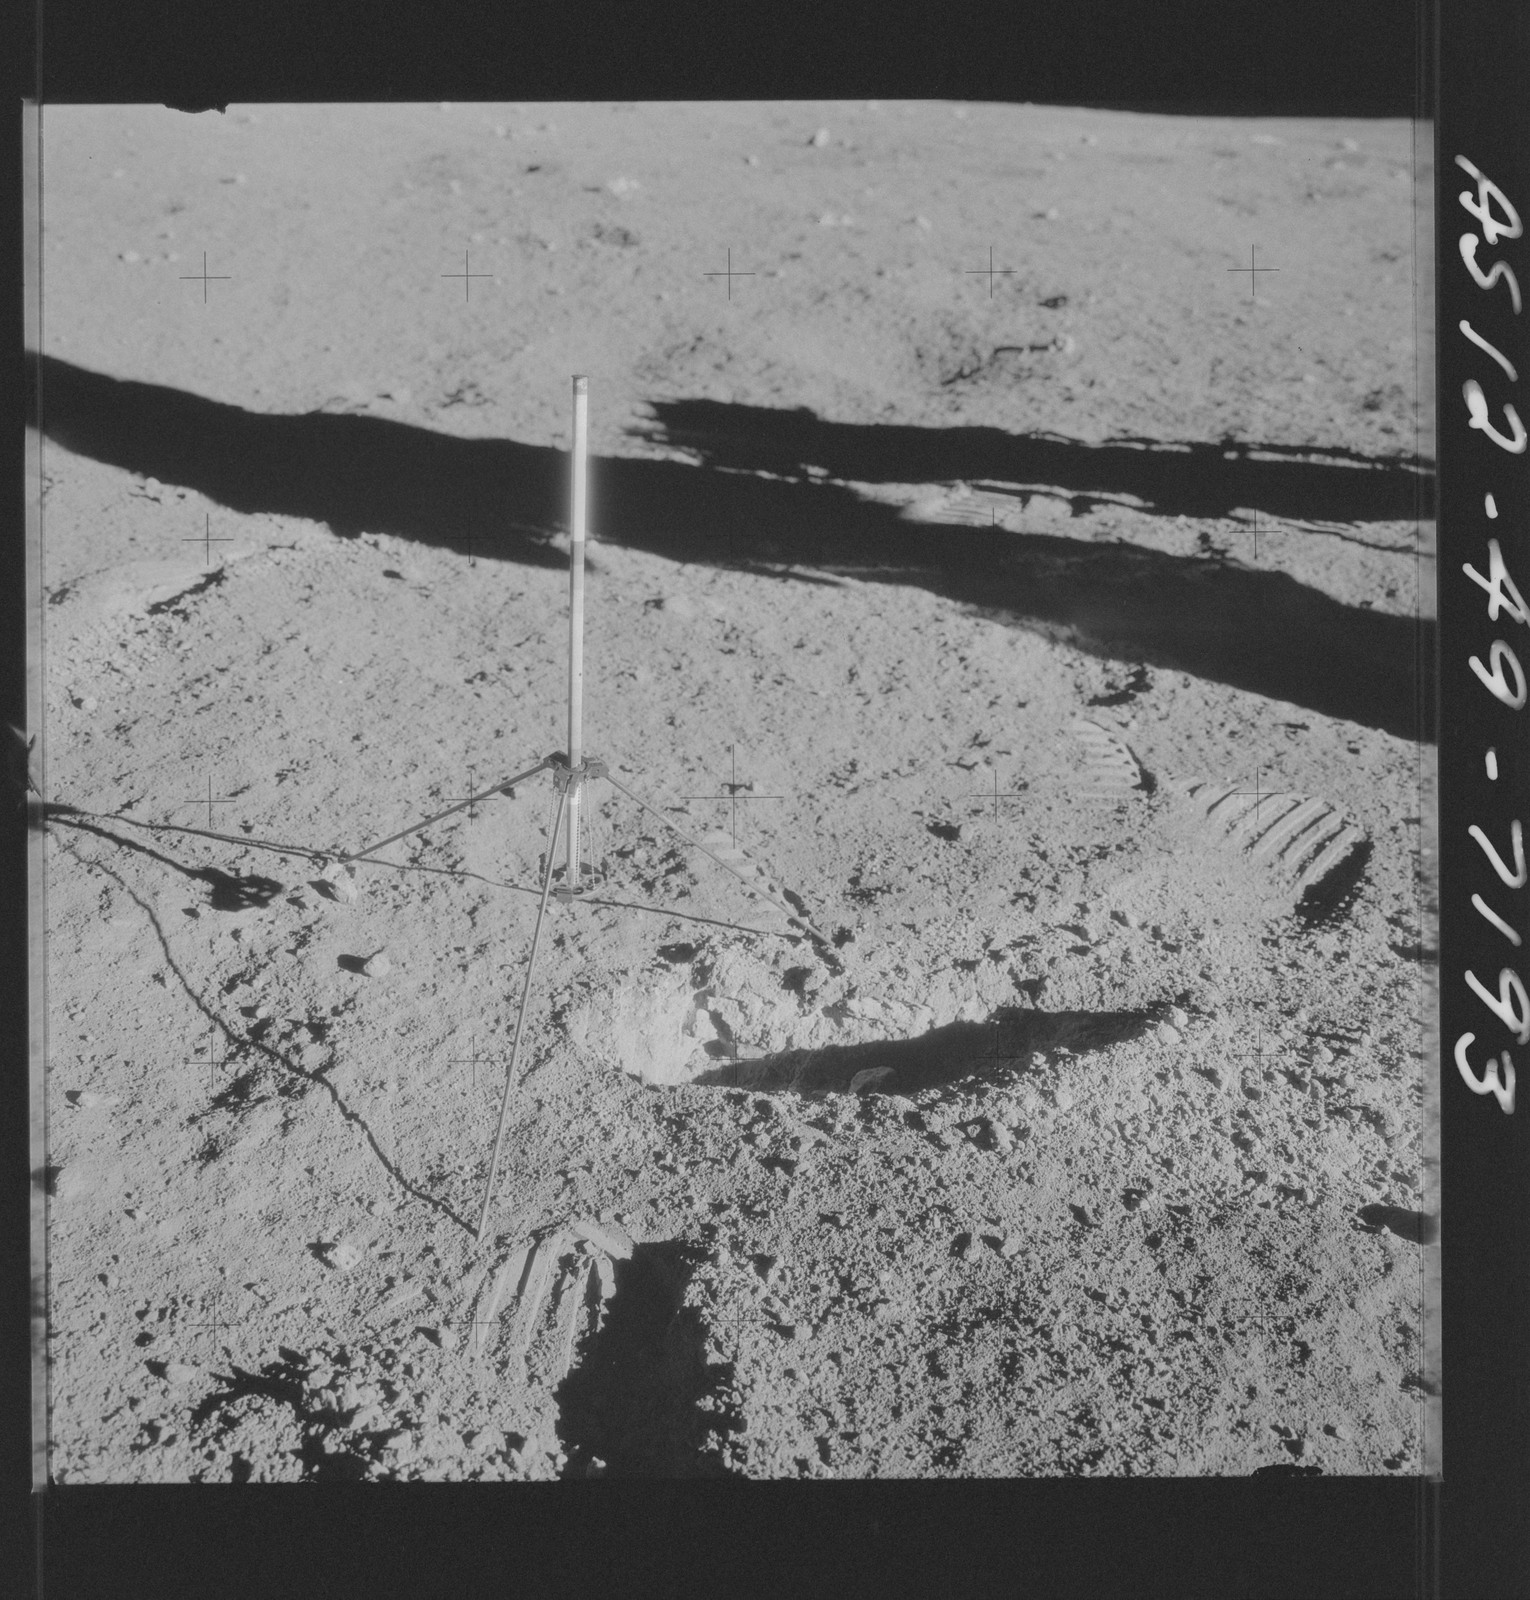 AS12-49-7193 - Apollo 12 - Apollo 12 Mission image  - View of a core sampler on the lunar surface